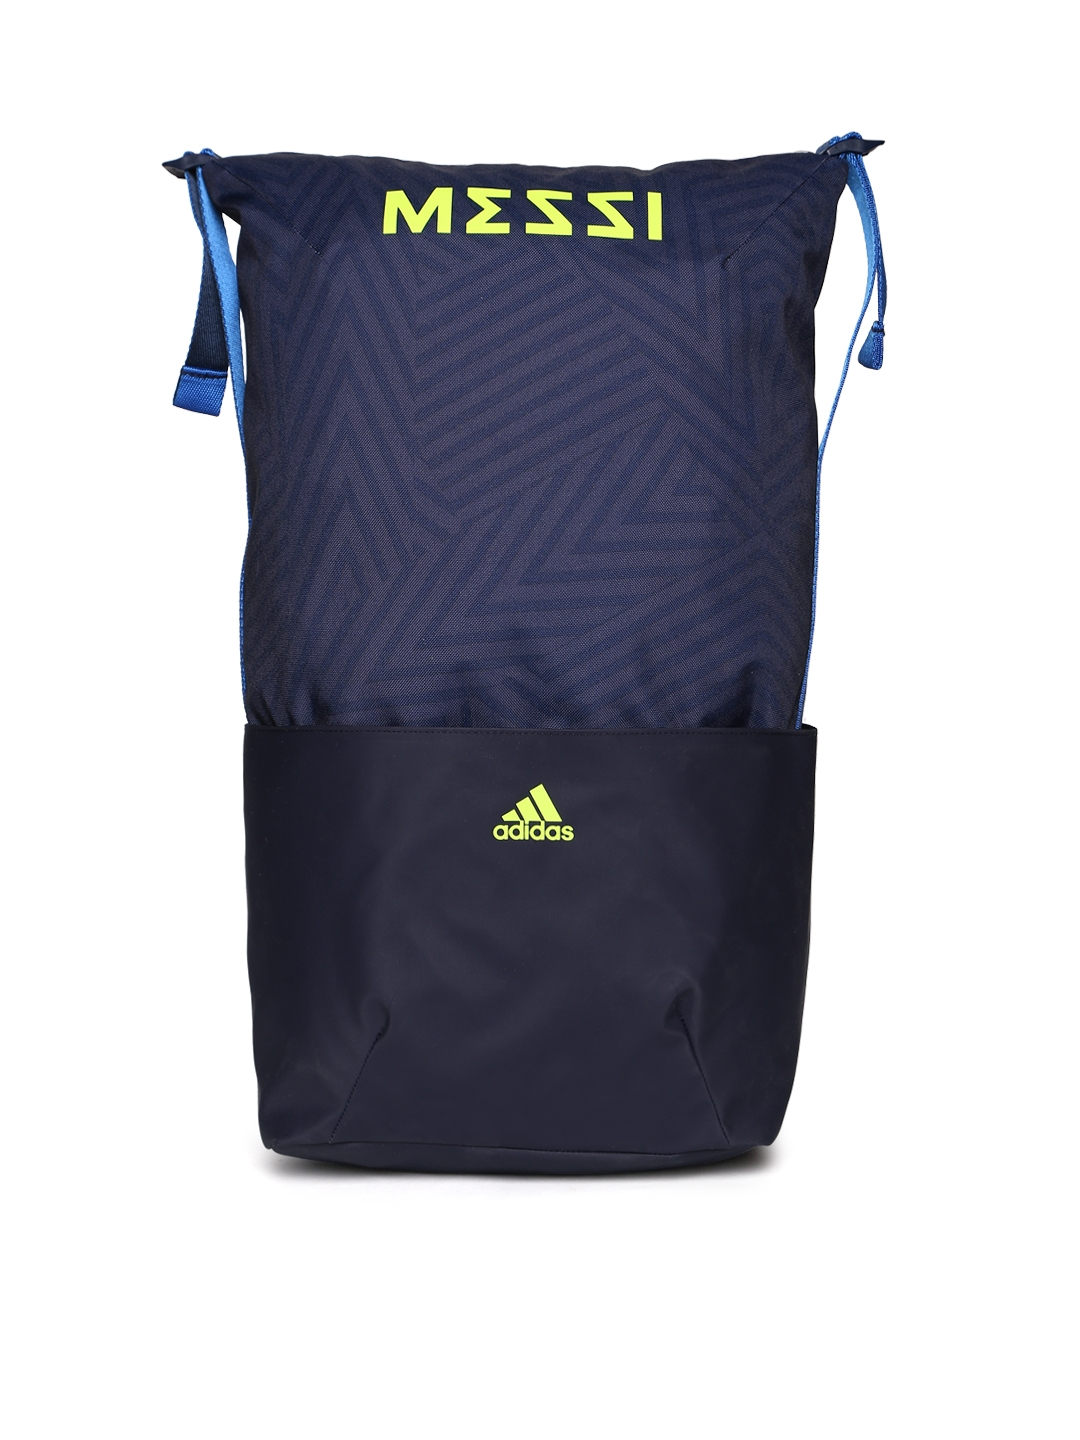 ADIDAS Boys Navy Blue Messi Printed Backpack